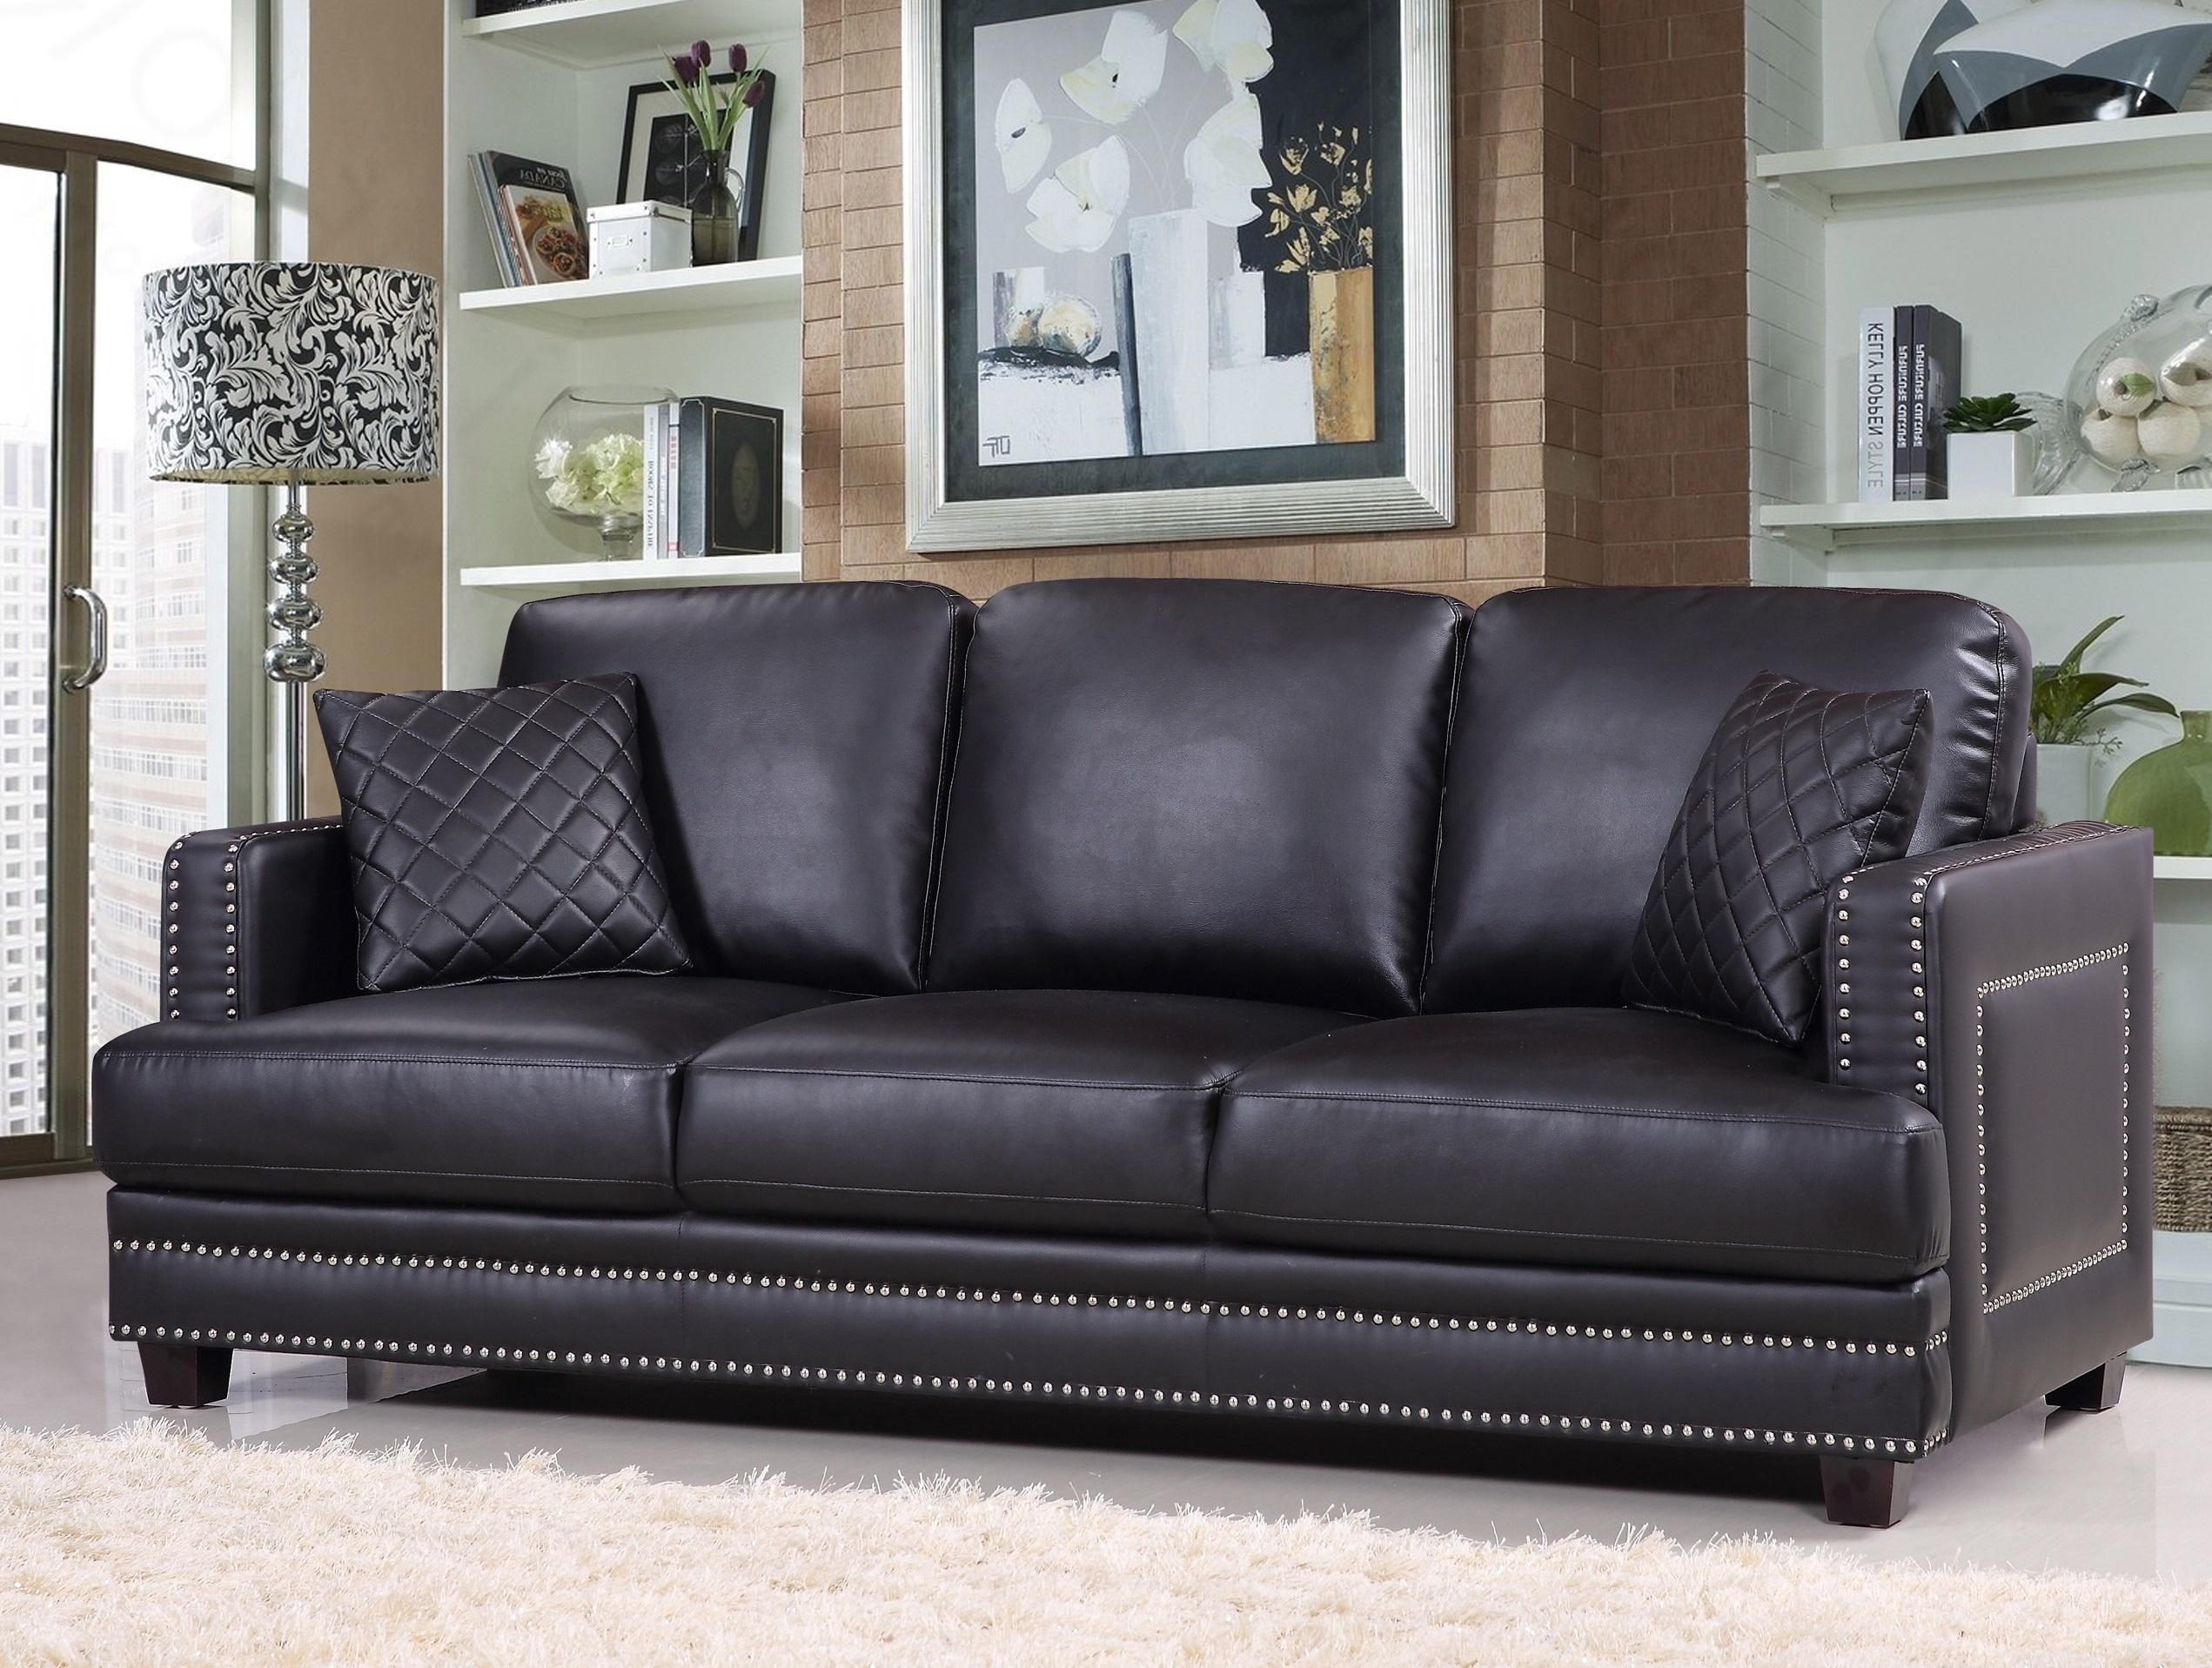 Brown Leather Sofa Nailhead Trim.  (Image 5 of 20)